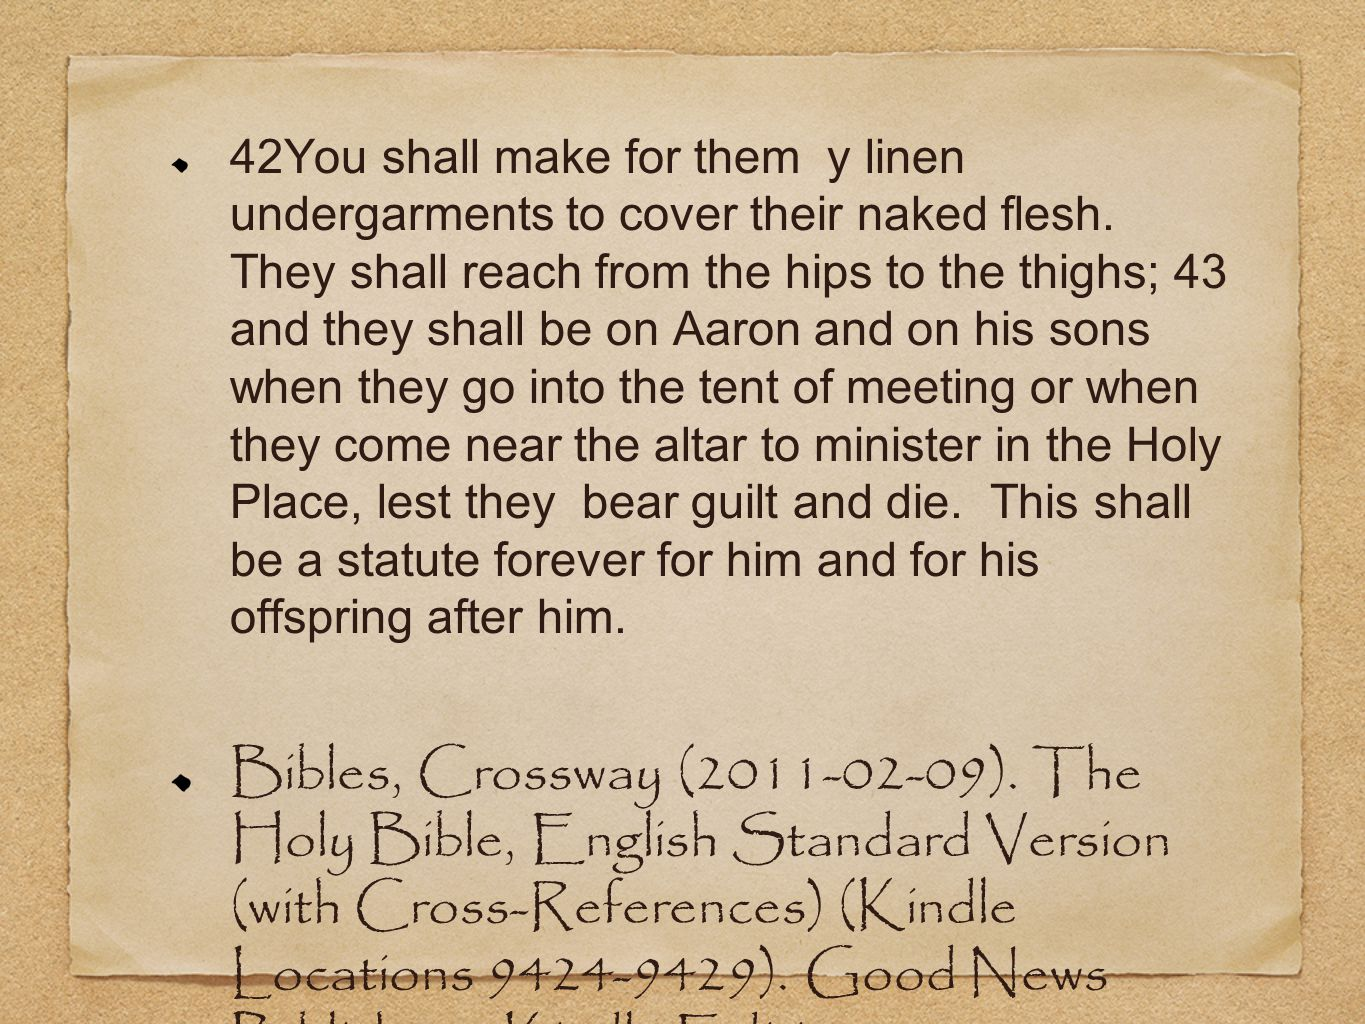 42You shall make for them y linen undergarments to cover their naked flesh.